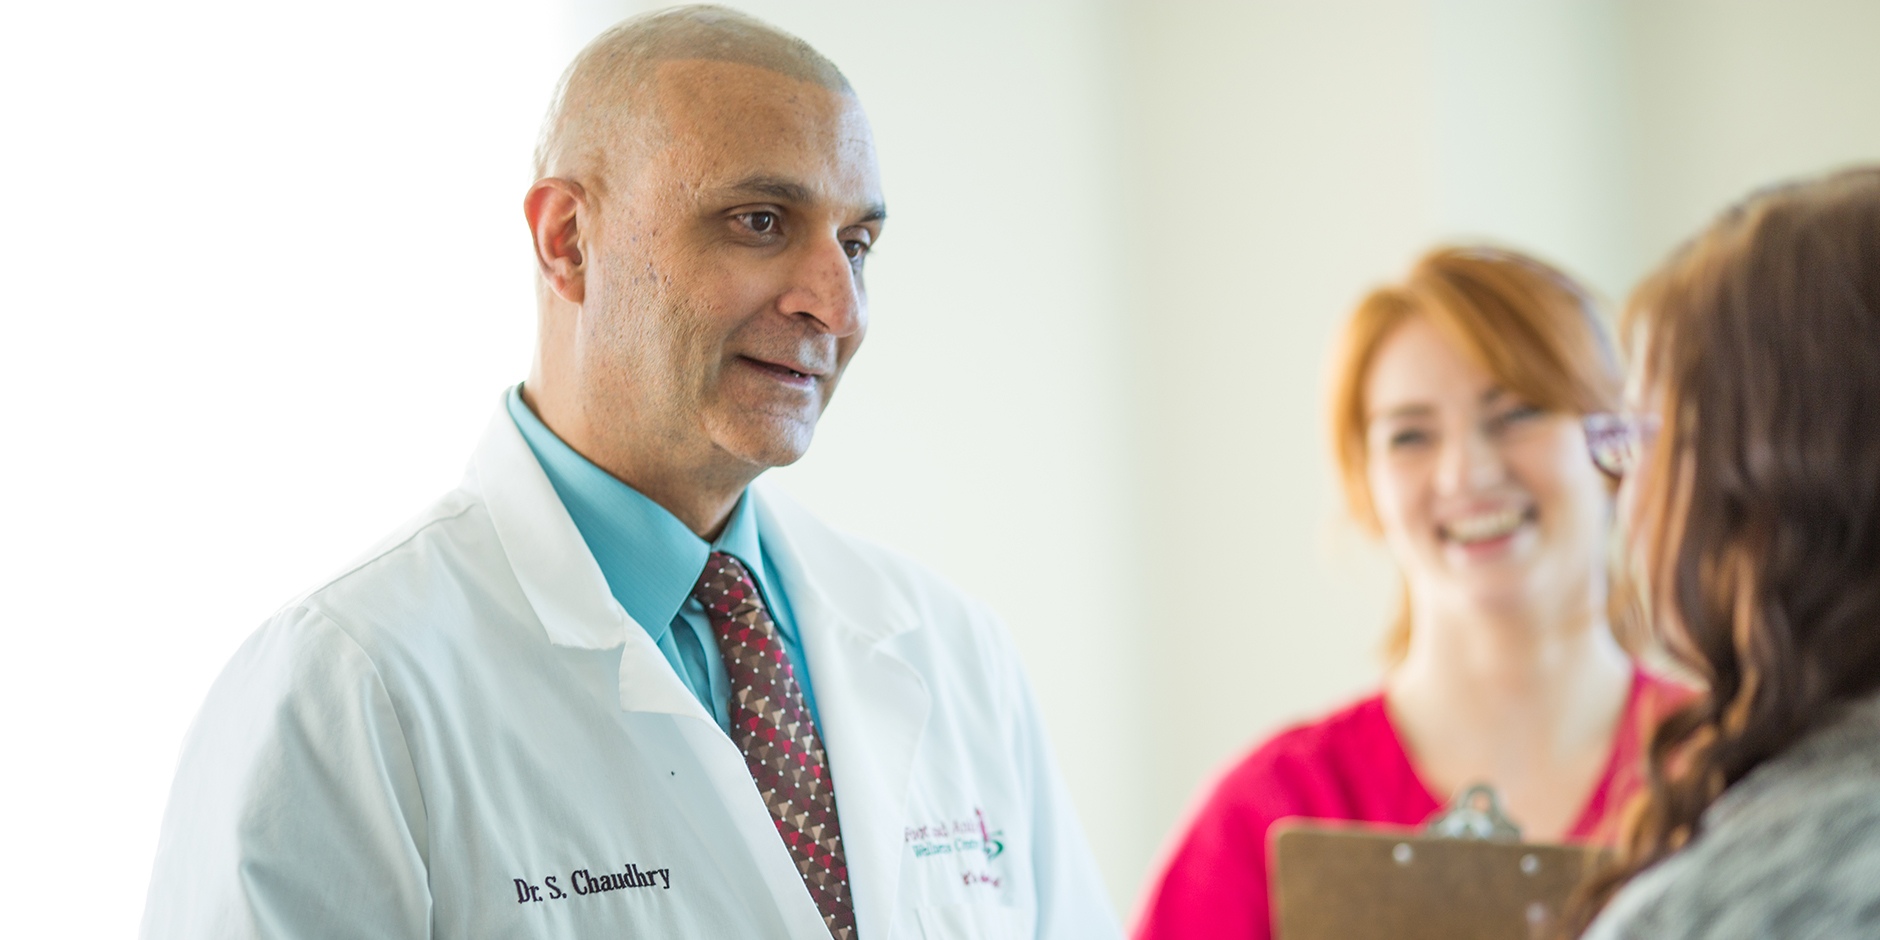 Dr. Chaudhry and an employee greeting a female patient. The doctor is wearing a white coat, tie, and collared shirt.